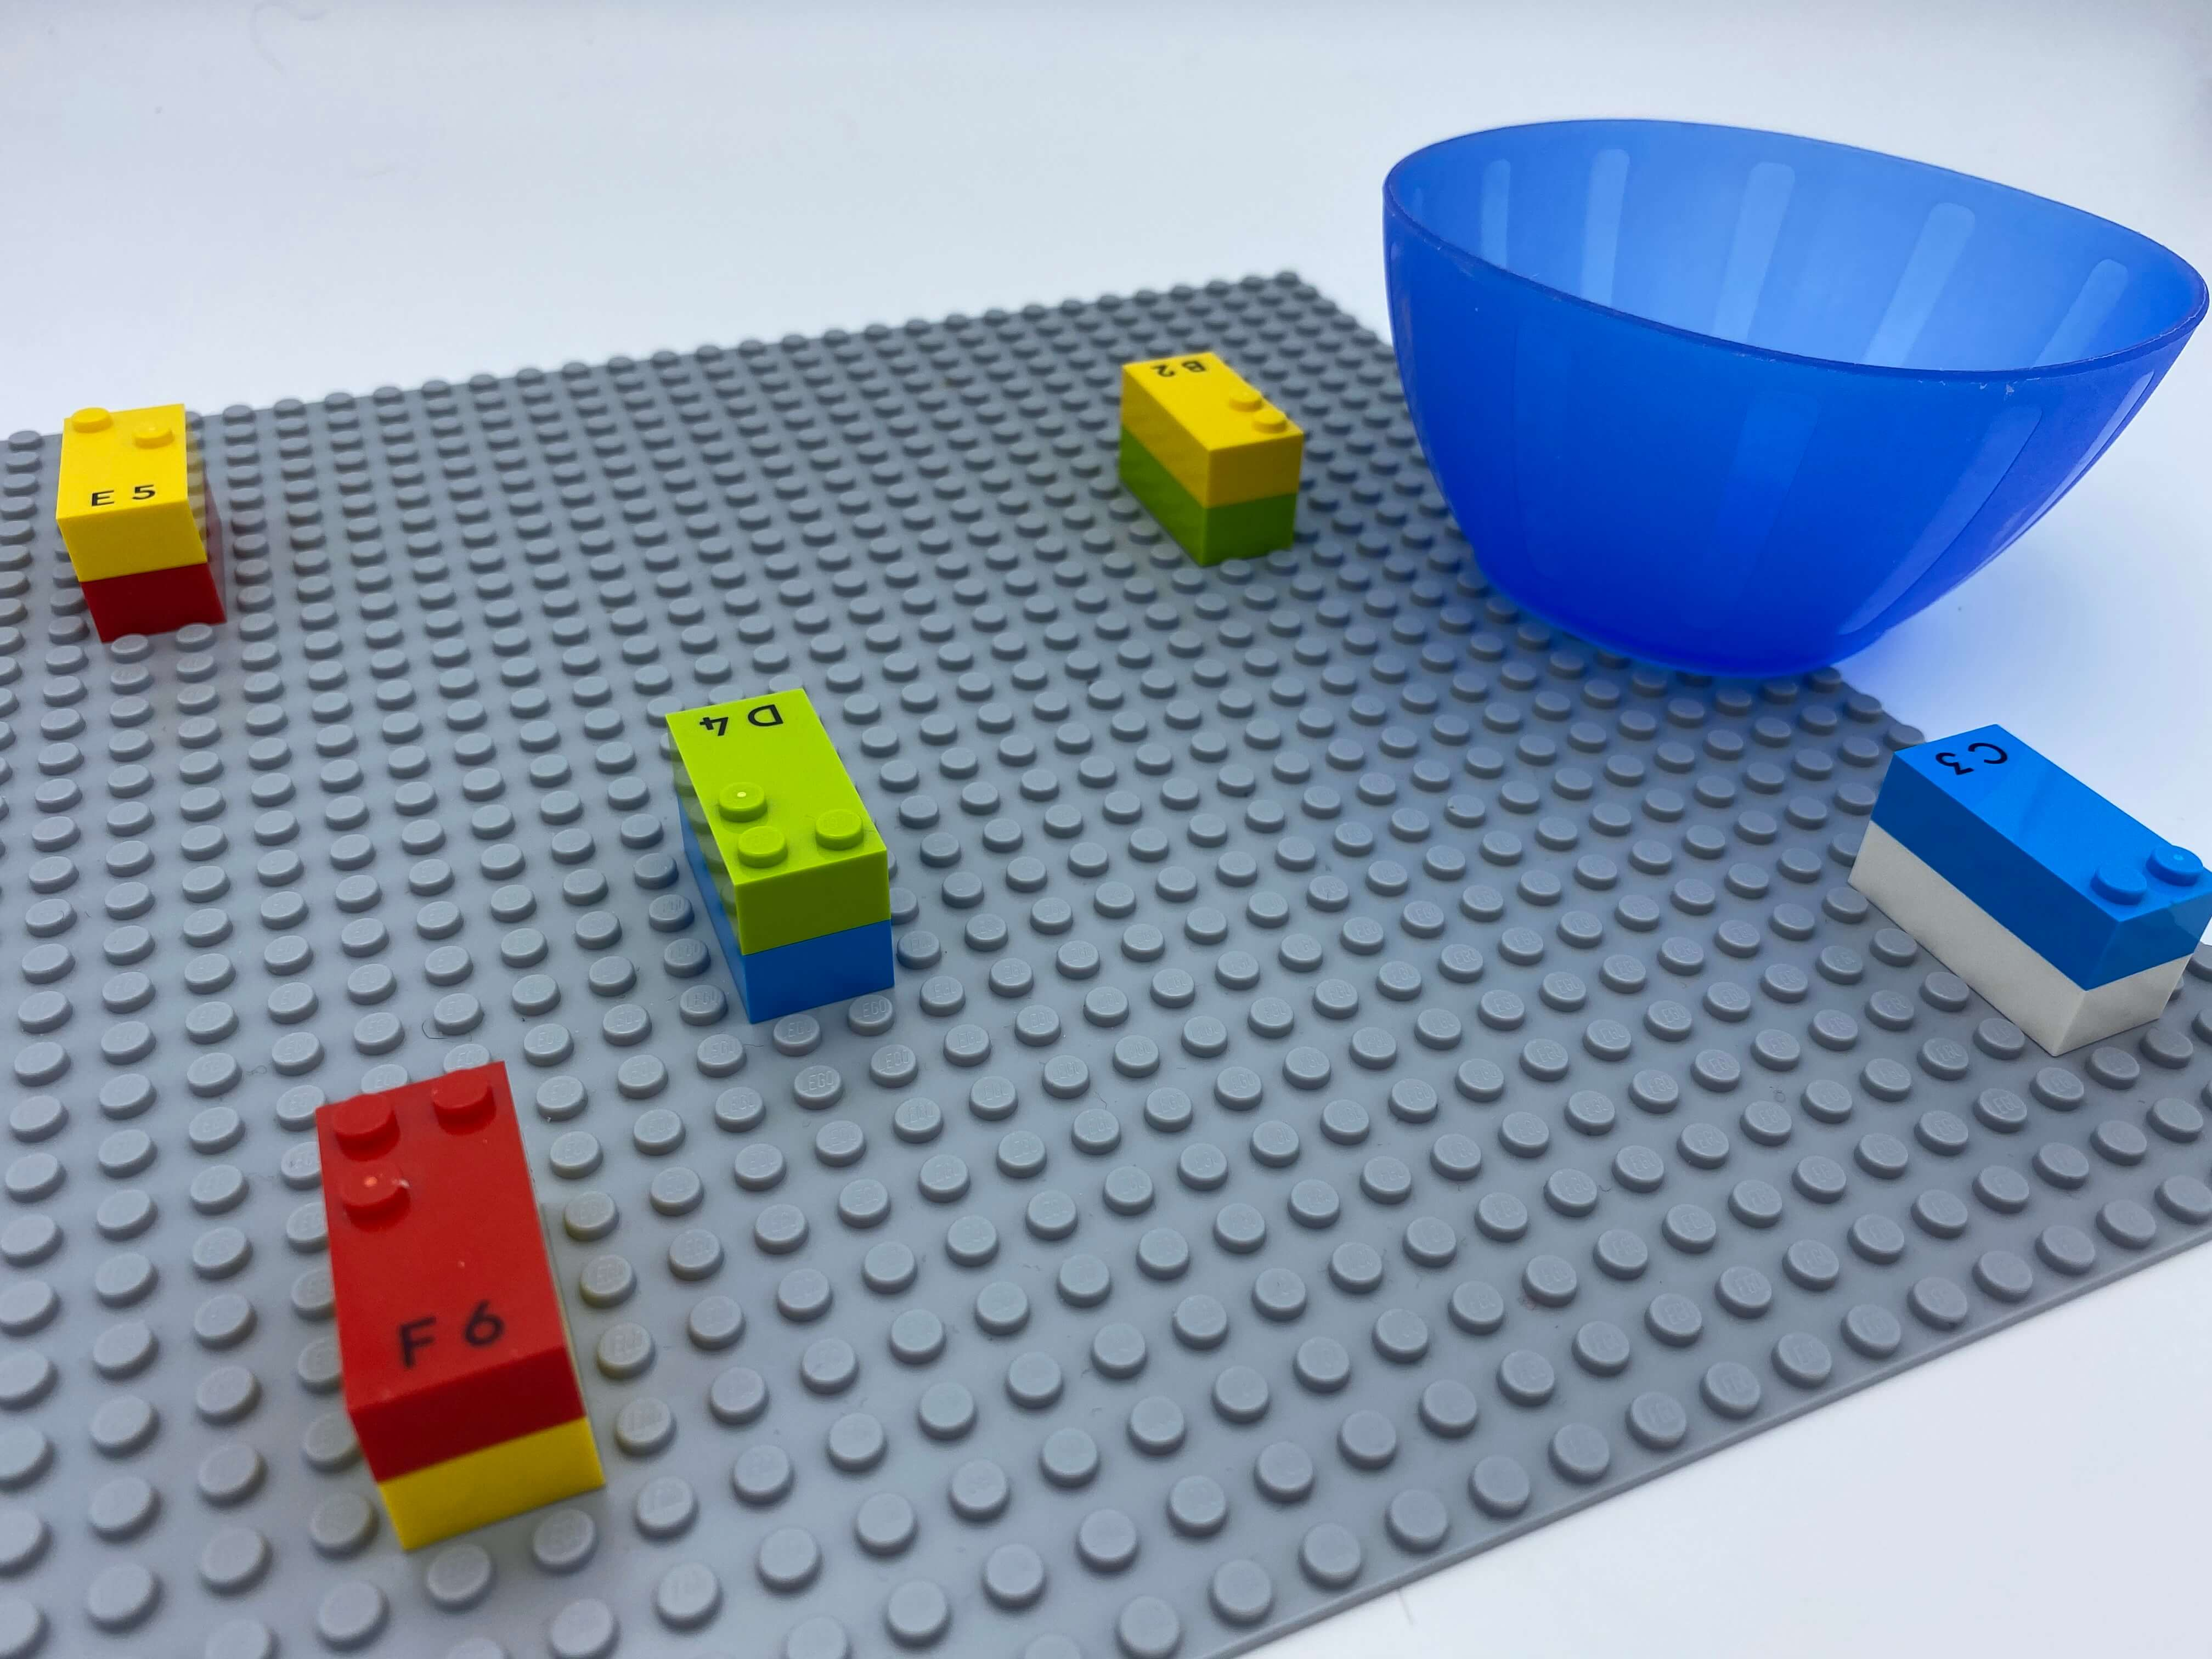 5 bricks covered by another one, spread over the base plate, an empty bowl.